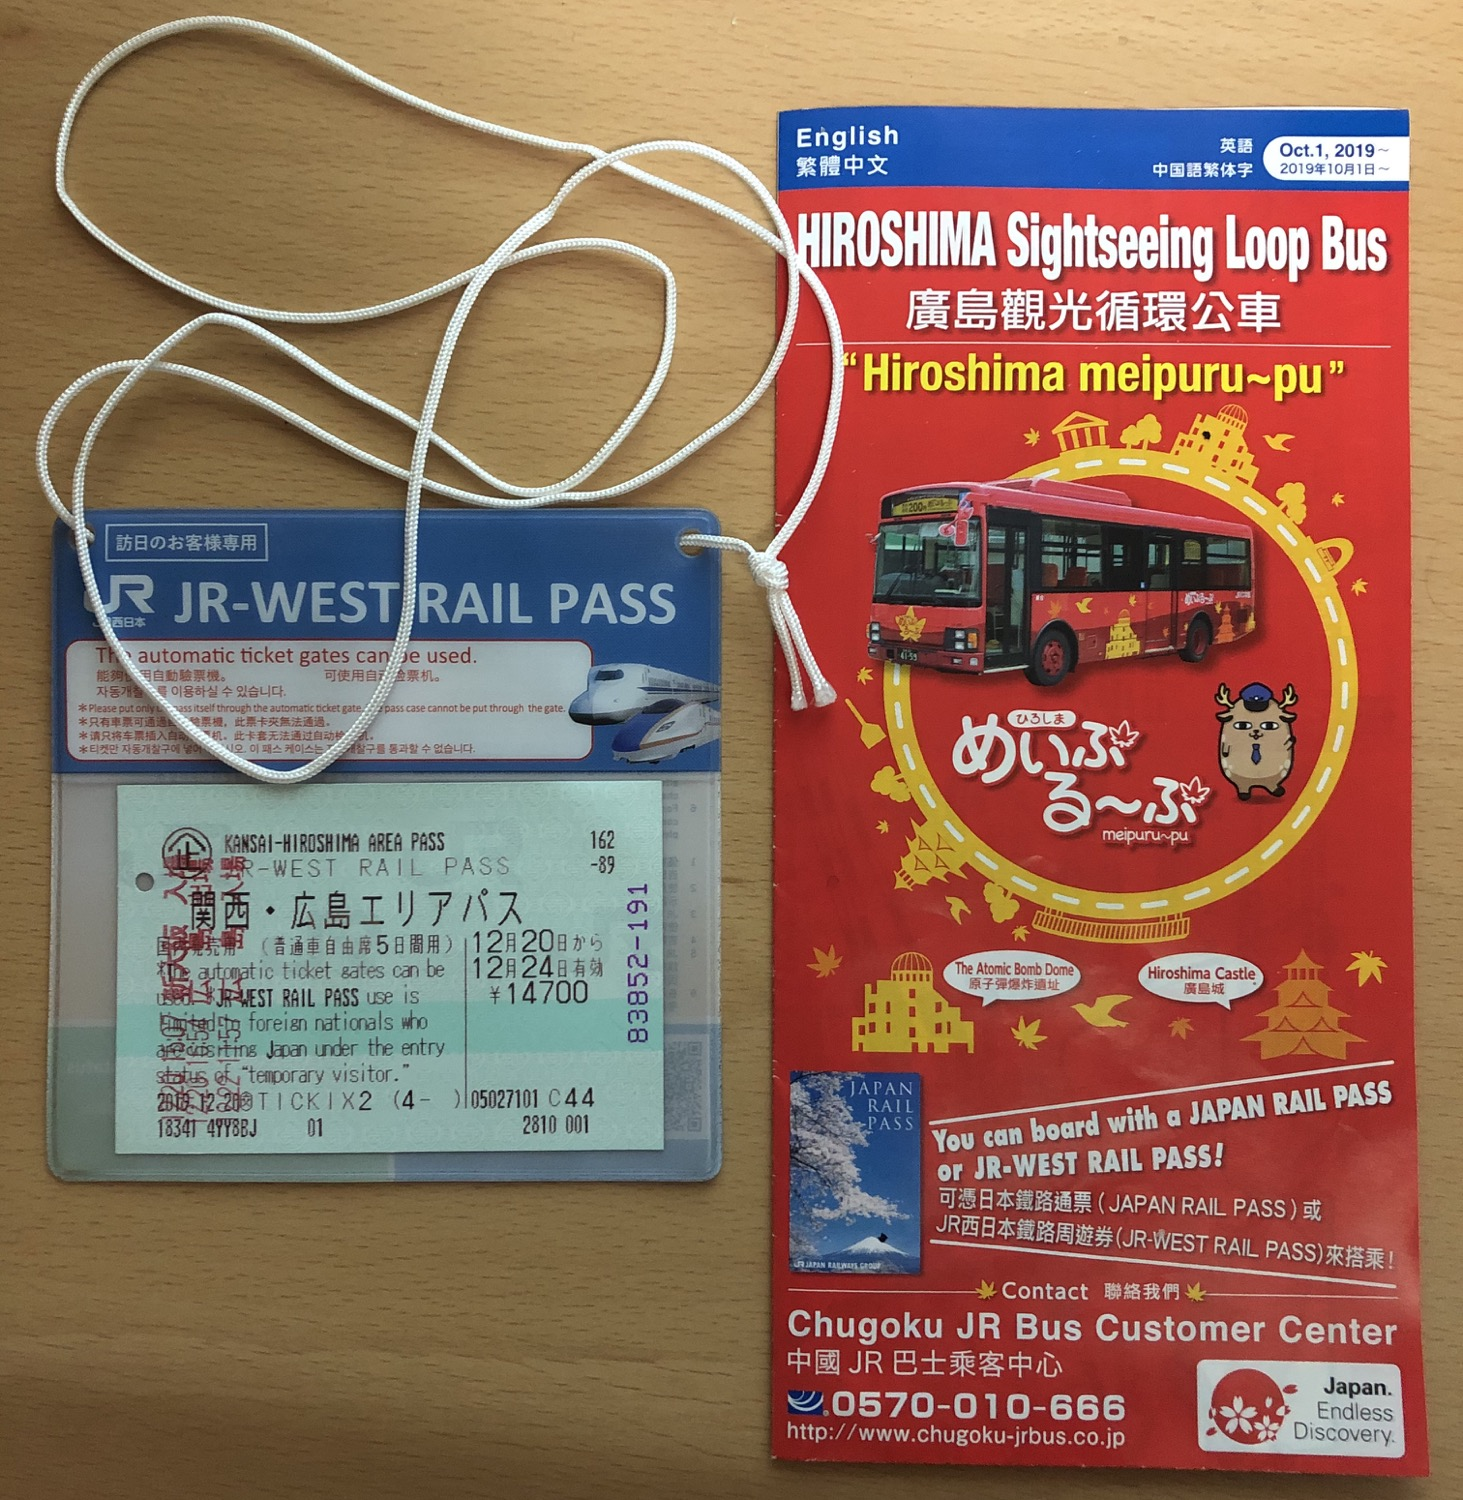 The JR-West Rail Pass and the brochure for the sightseeing loop bus